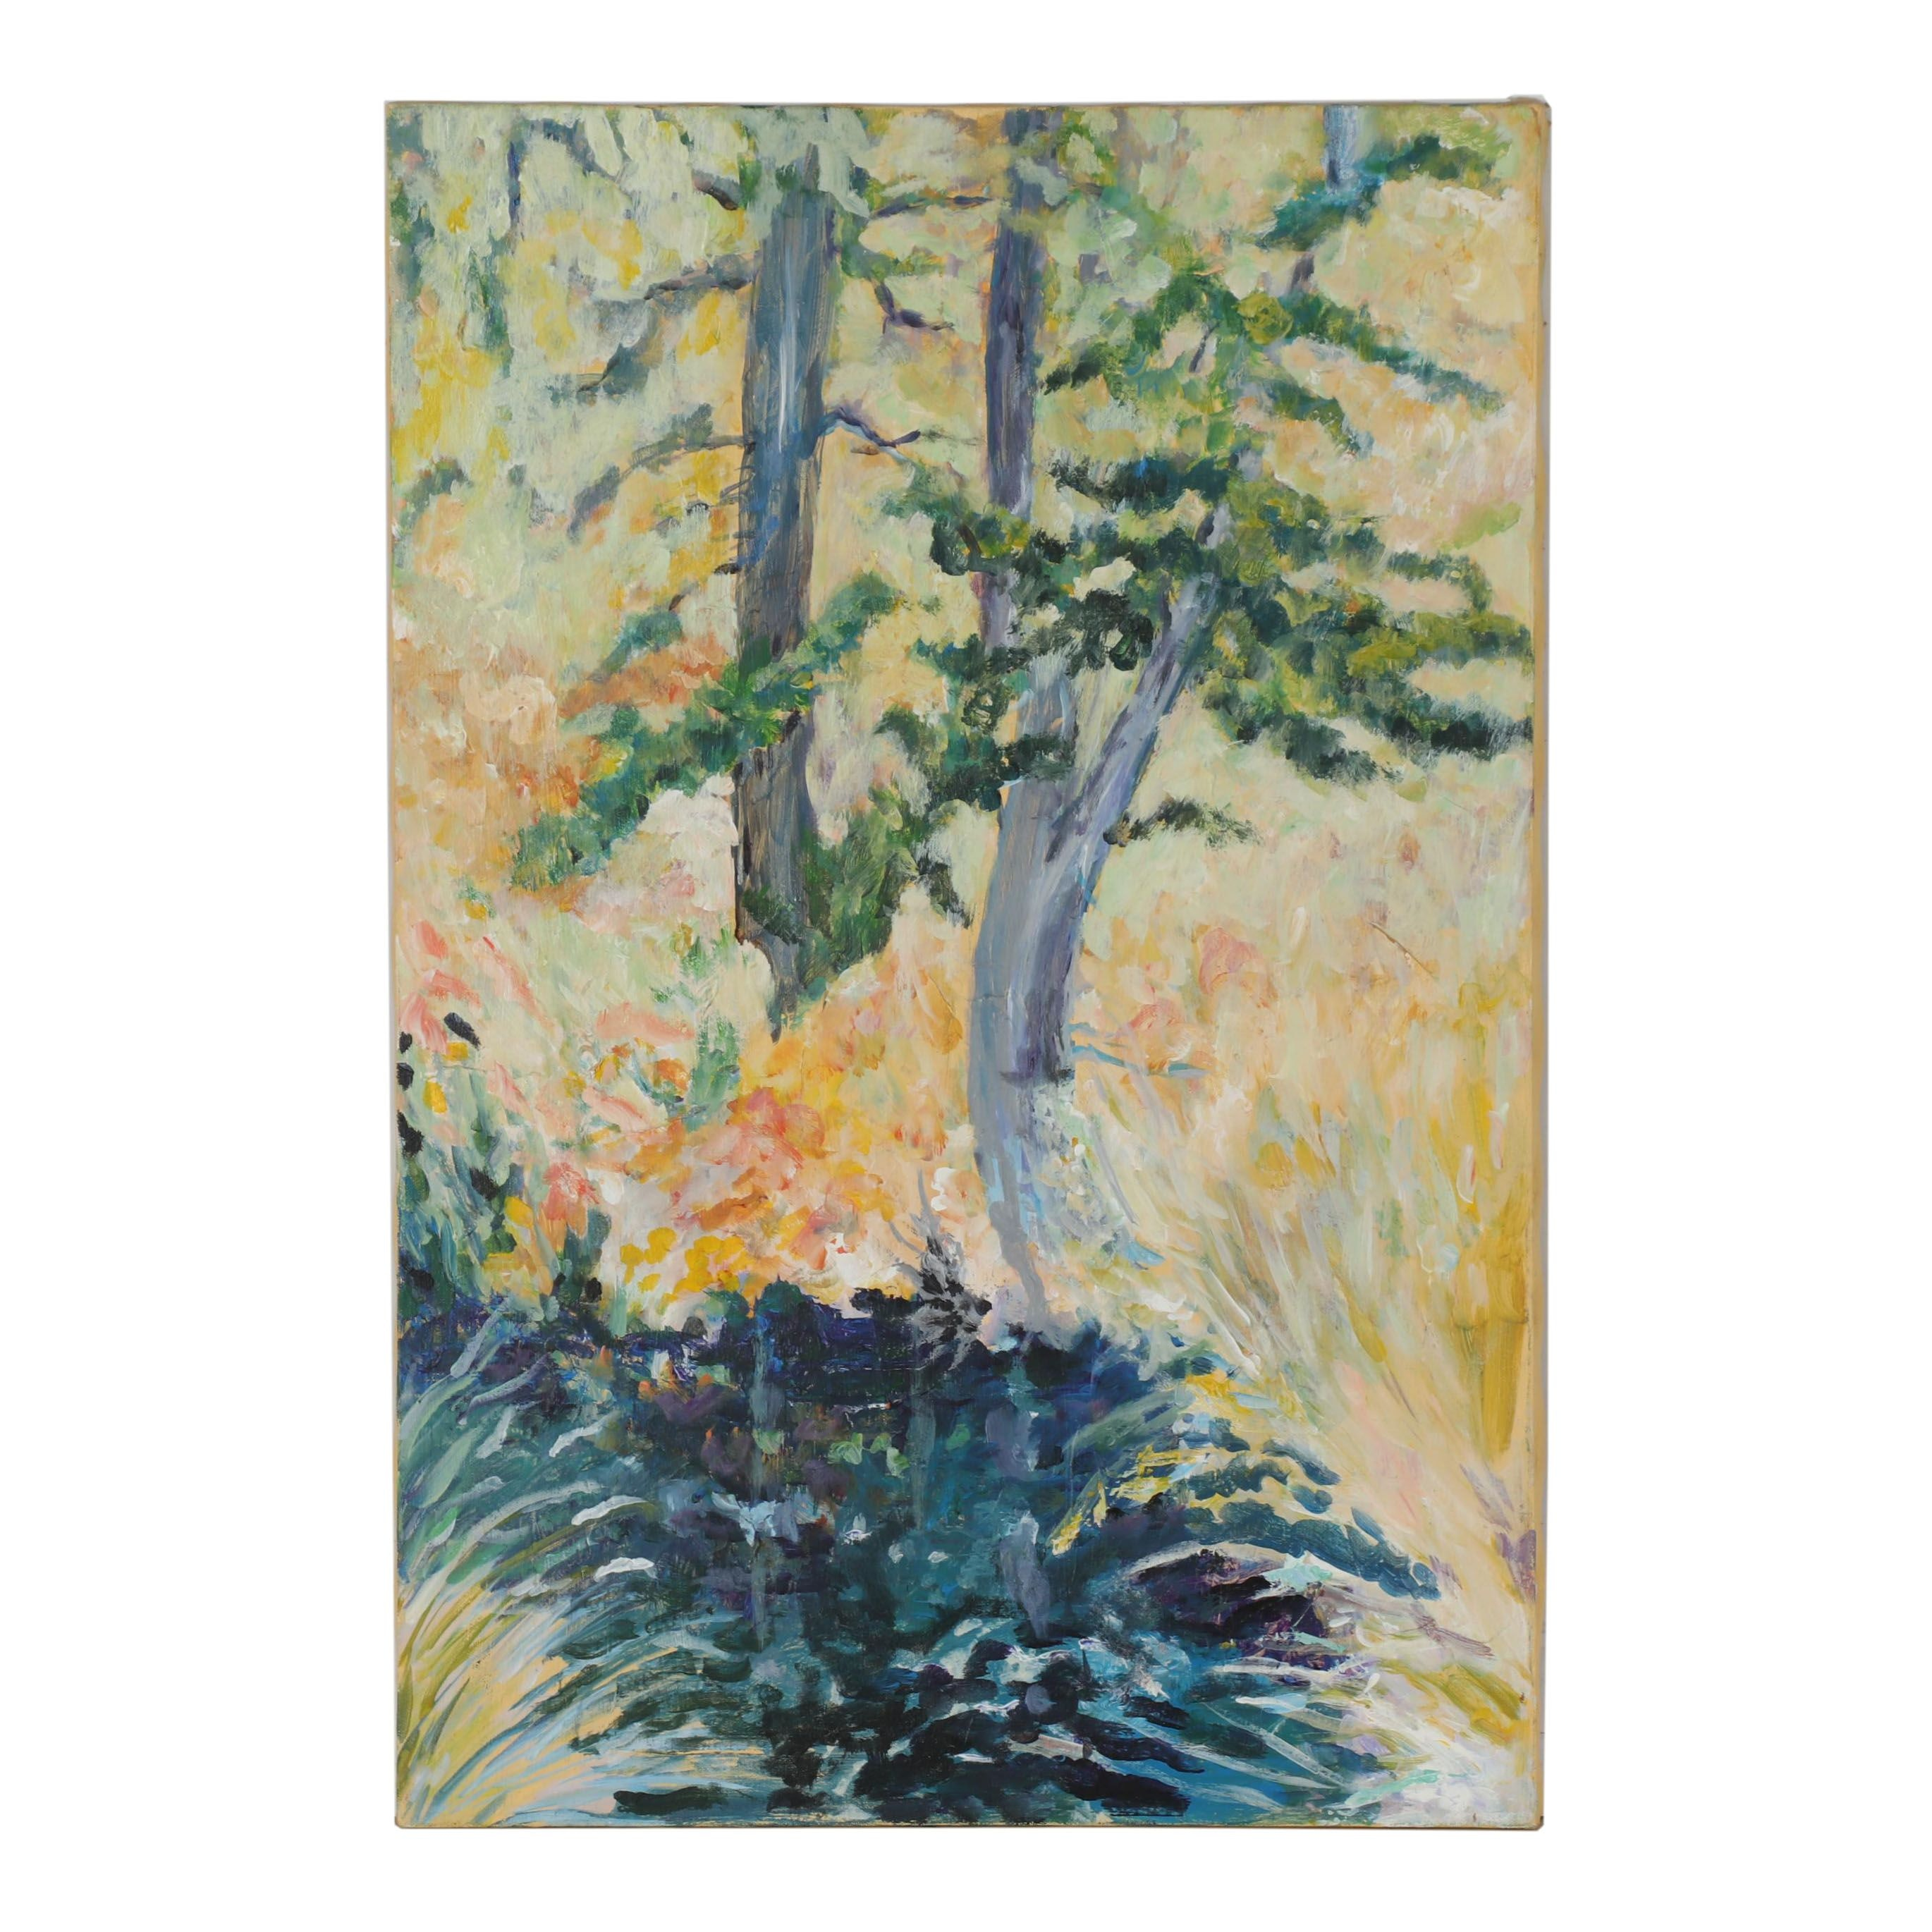 Expressionist Style Oil Painting of Trees